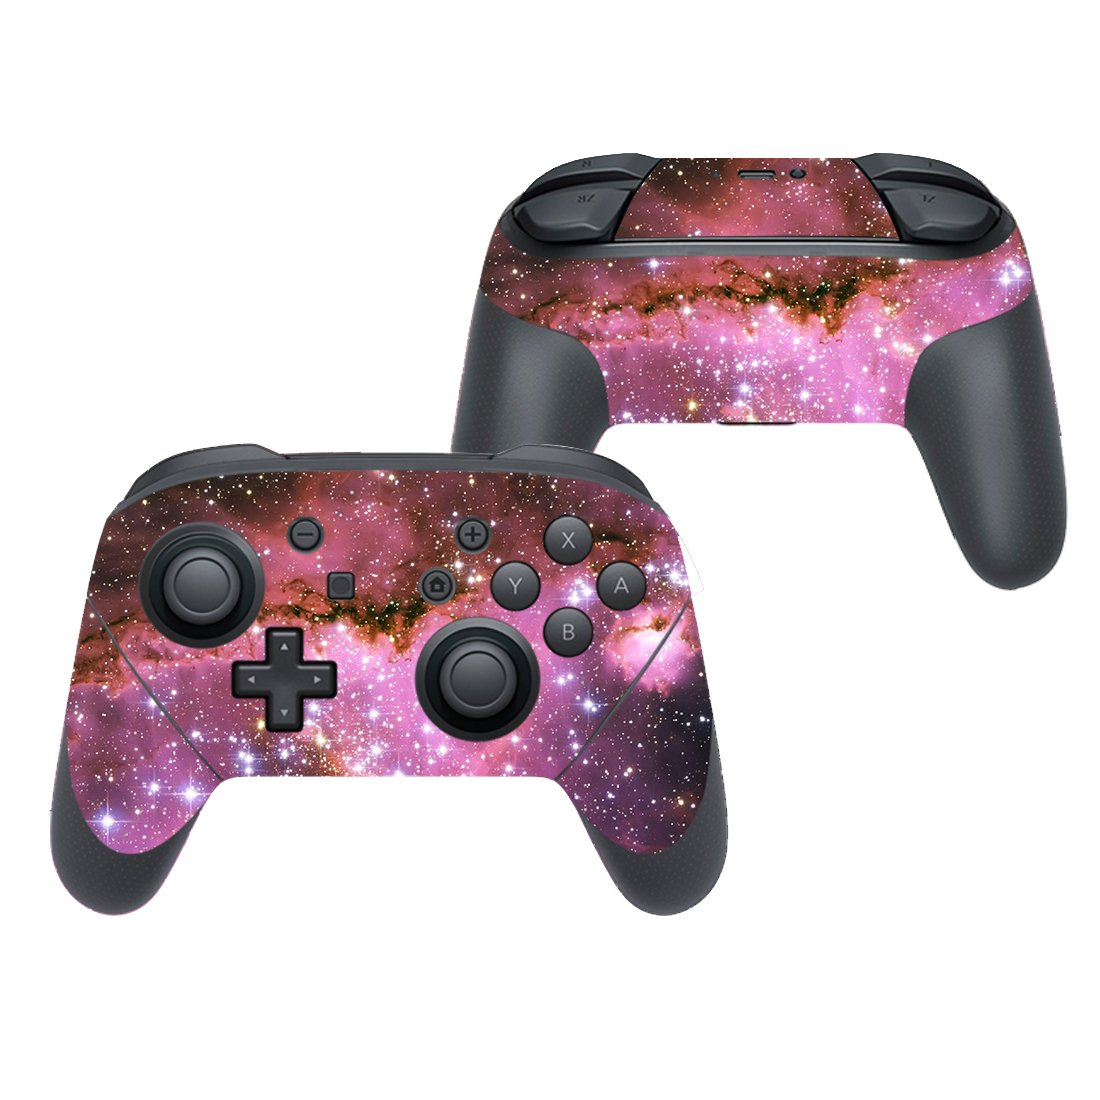 Galaxy stars decal for Nintendo switch controller pro sticker skin